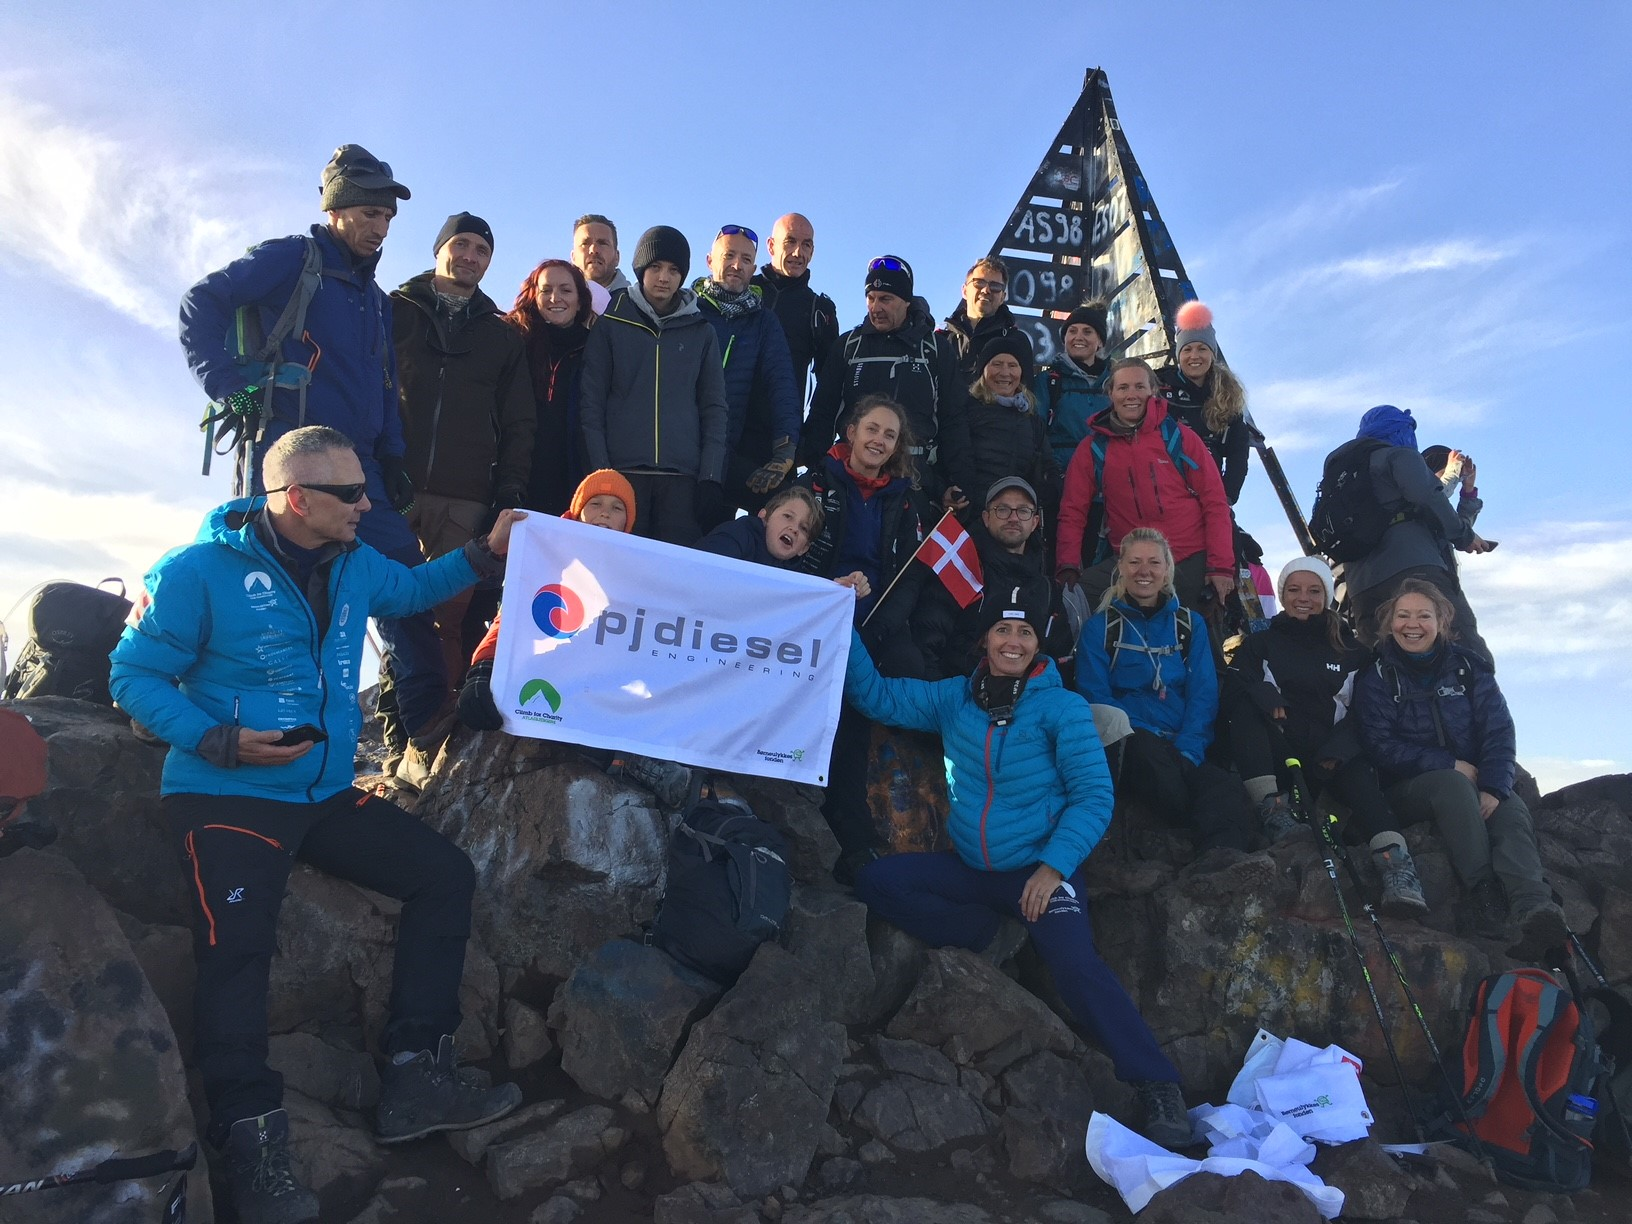 PJ Diesel proudly supporting climbing, and reach new mountain top